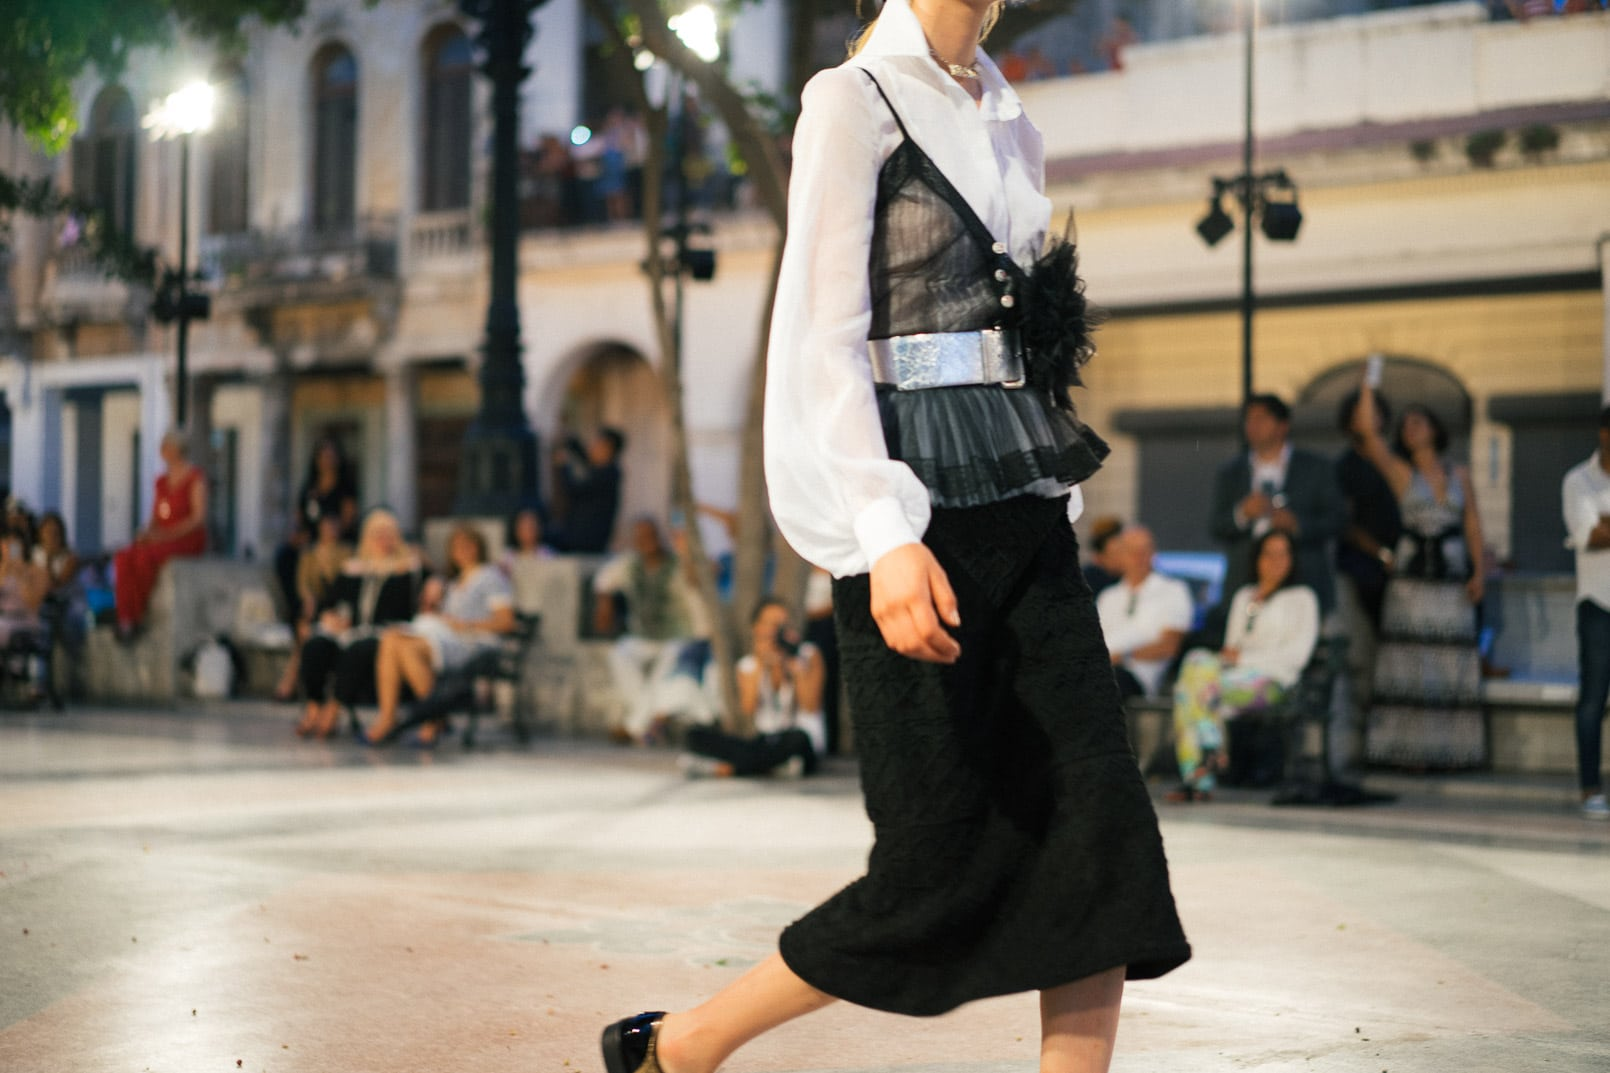 Chanel Cruise Cuba, Pam Hetlinger, The Girl From Panama, Chanel's Cruise Show in Cuba